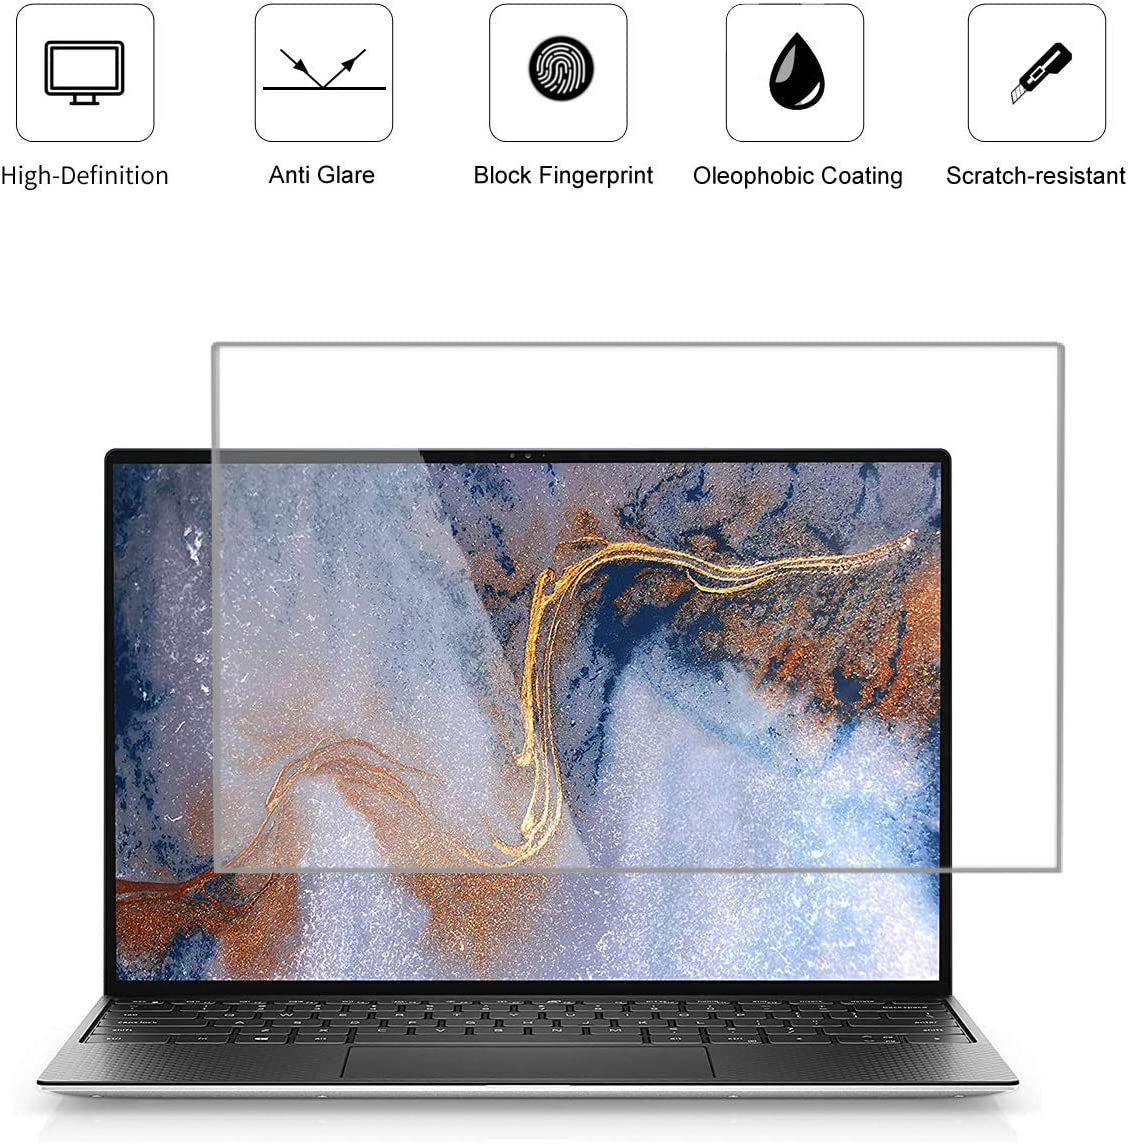 KEANBOLL 3 Pack Matte Anti-Glare Screen Protector for New Dell XPS 13 9300 13.4-Inch Laptop, Help for Your Eyes Reduce Fatigue, Anti Fingerprint